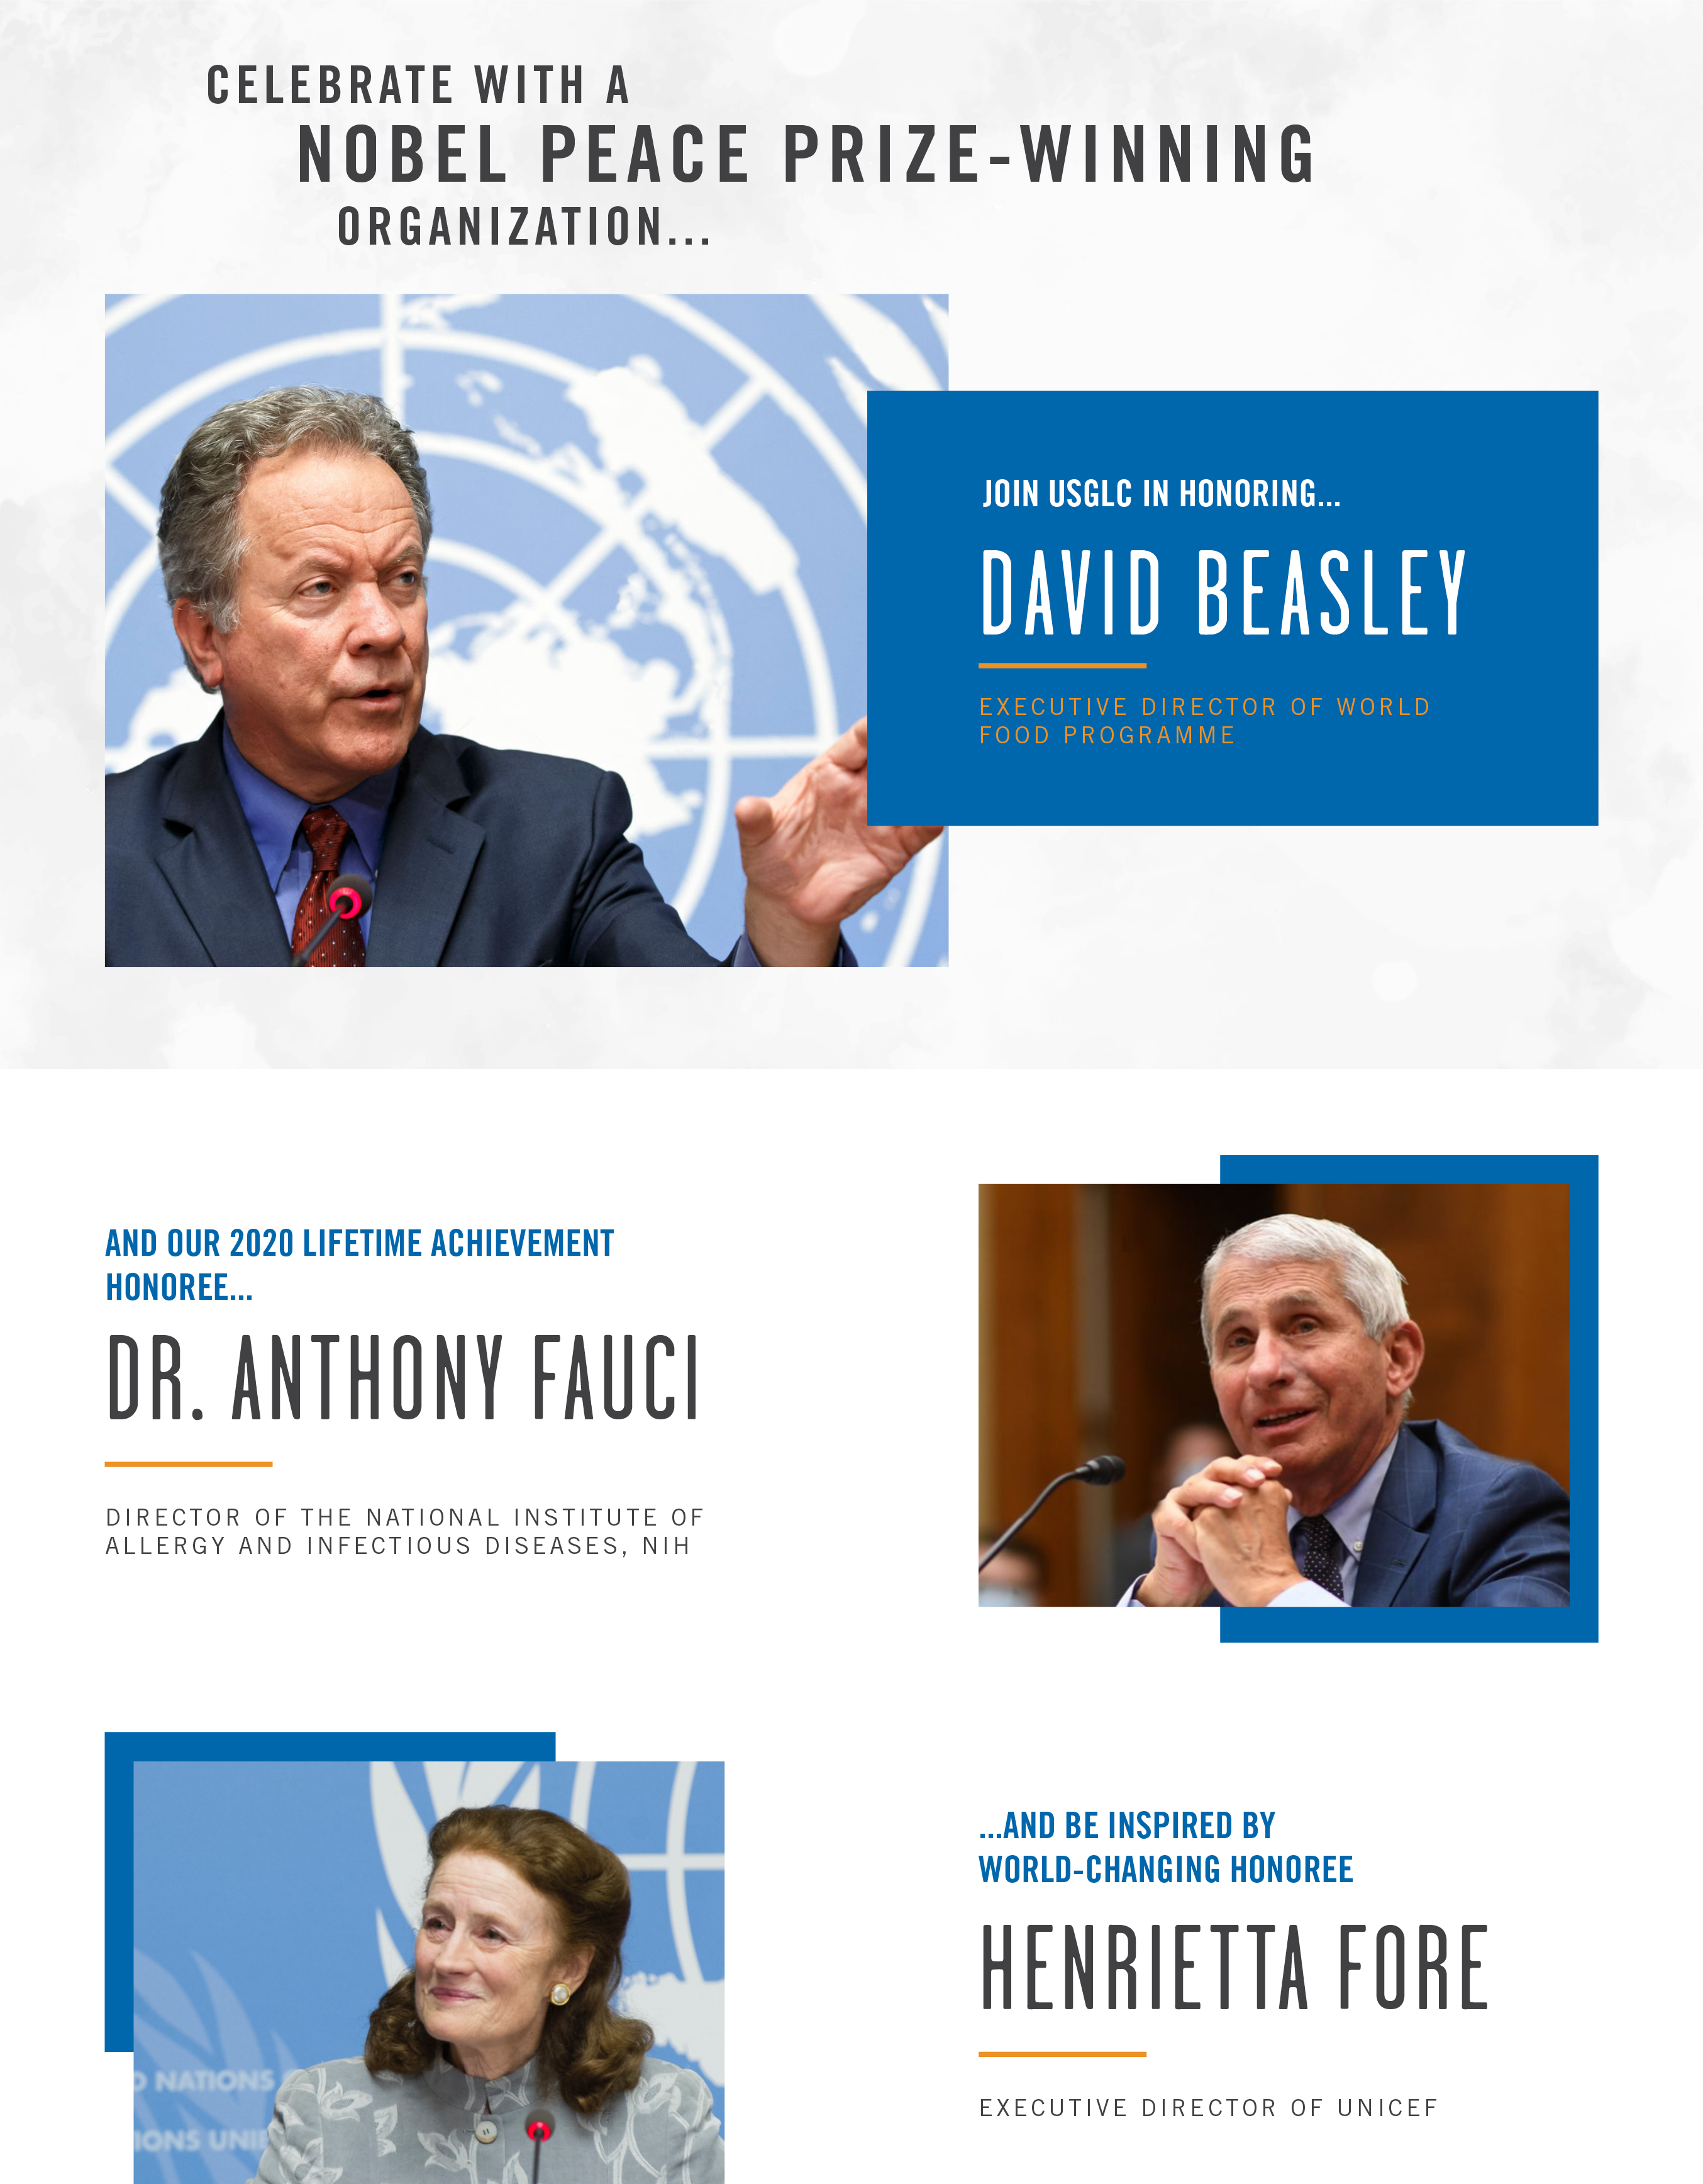 Honoring Anthony Fauci, Henrietta Fore, and David Beasley